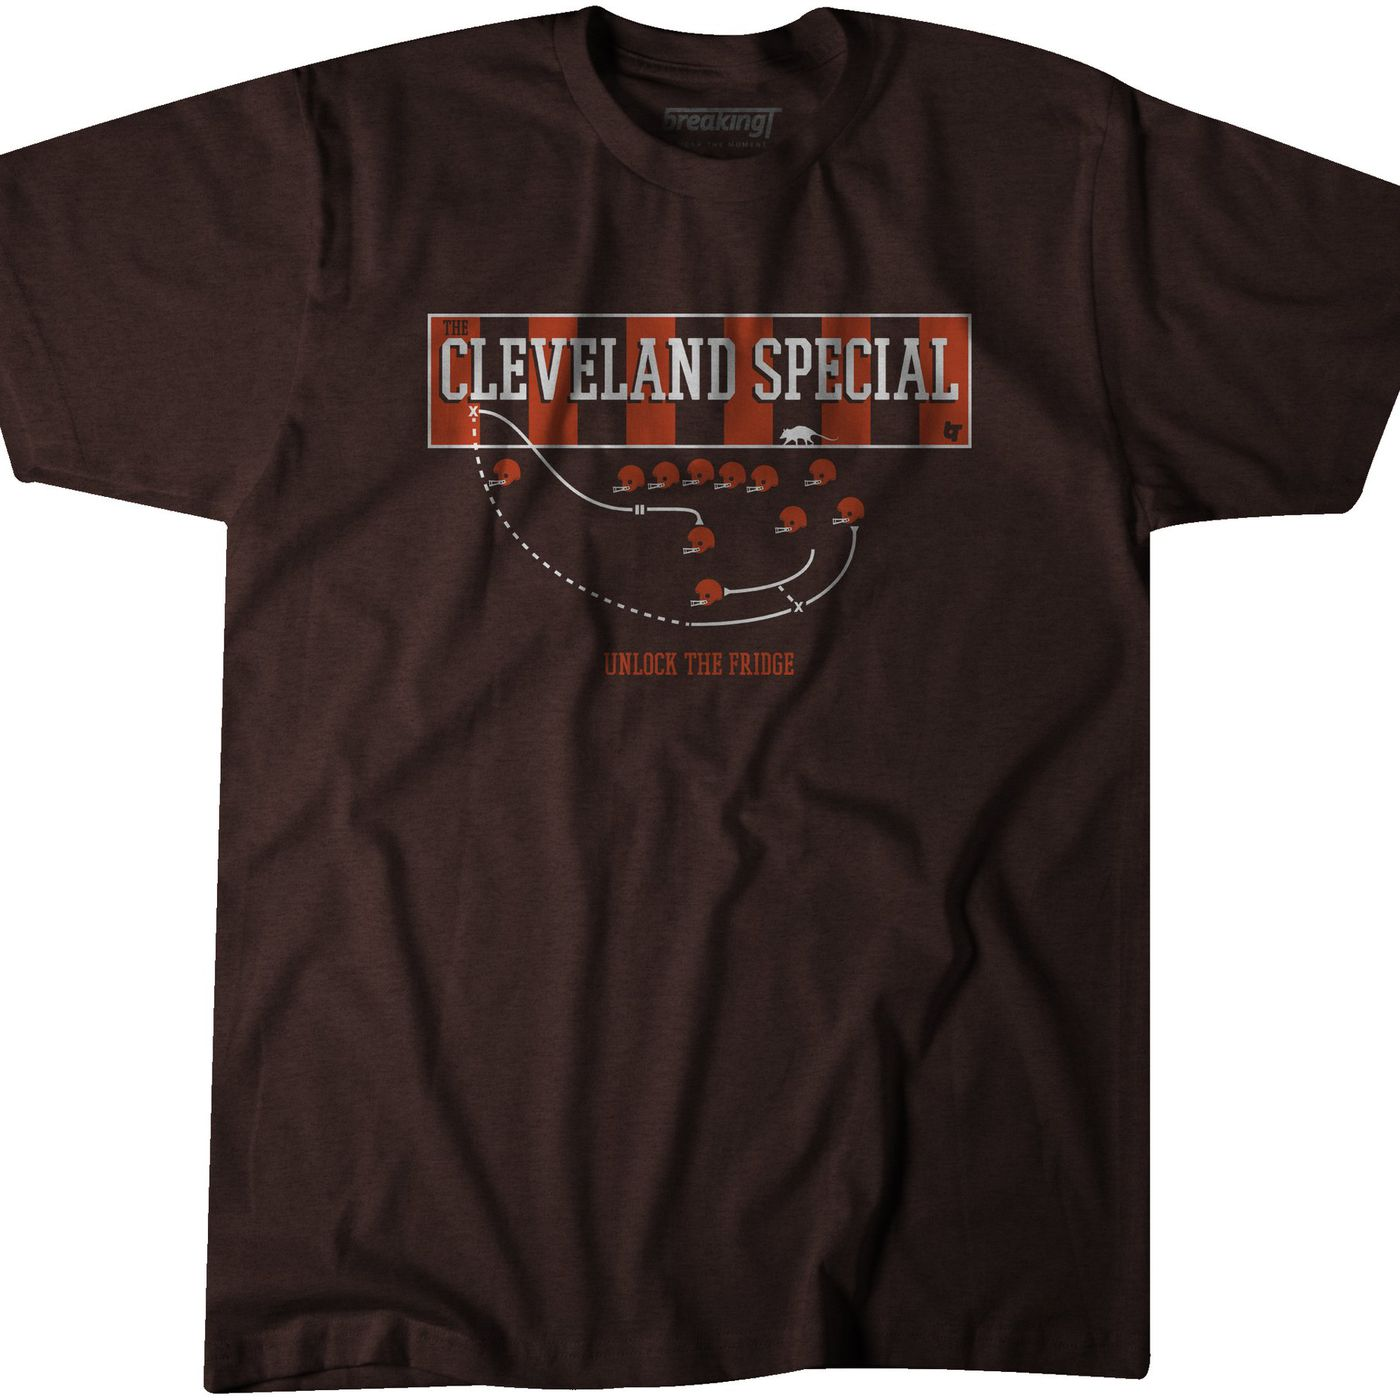 Clevelandspecial The Cleveland Special Is Now Shirt For Browns Fans To Cherish With Their Free Beer Sbnation Com